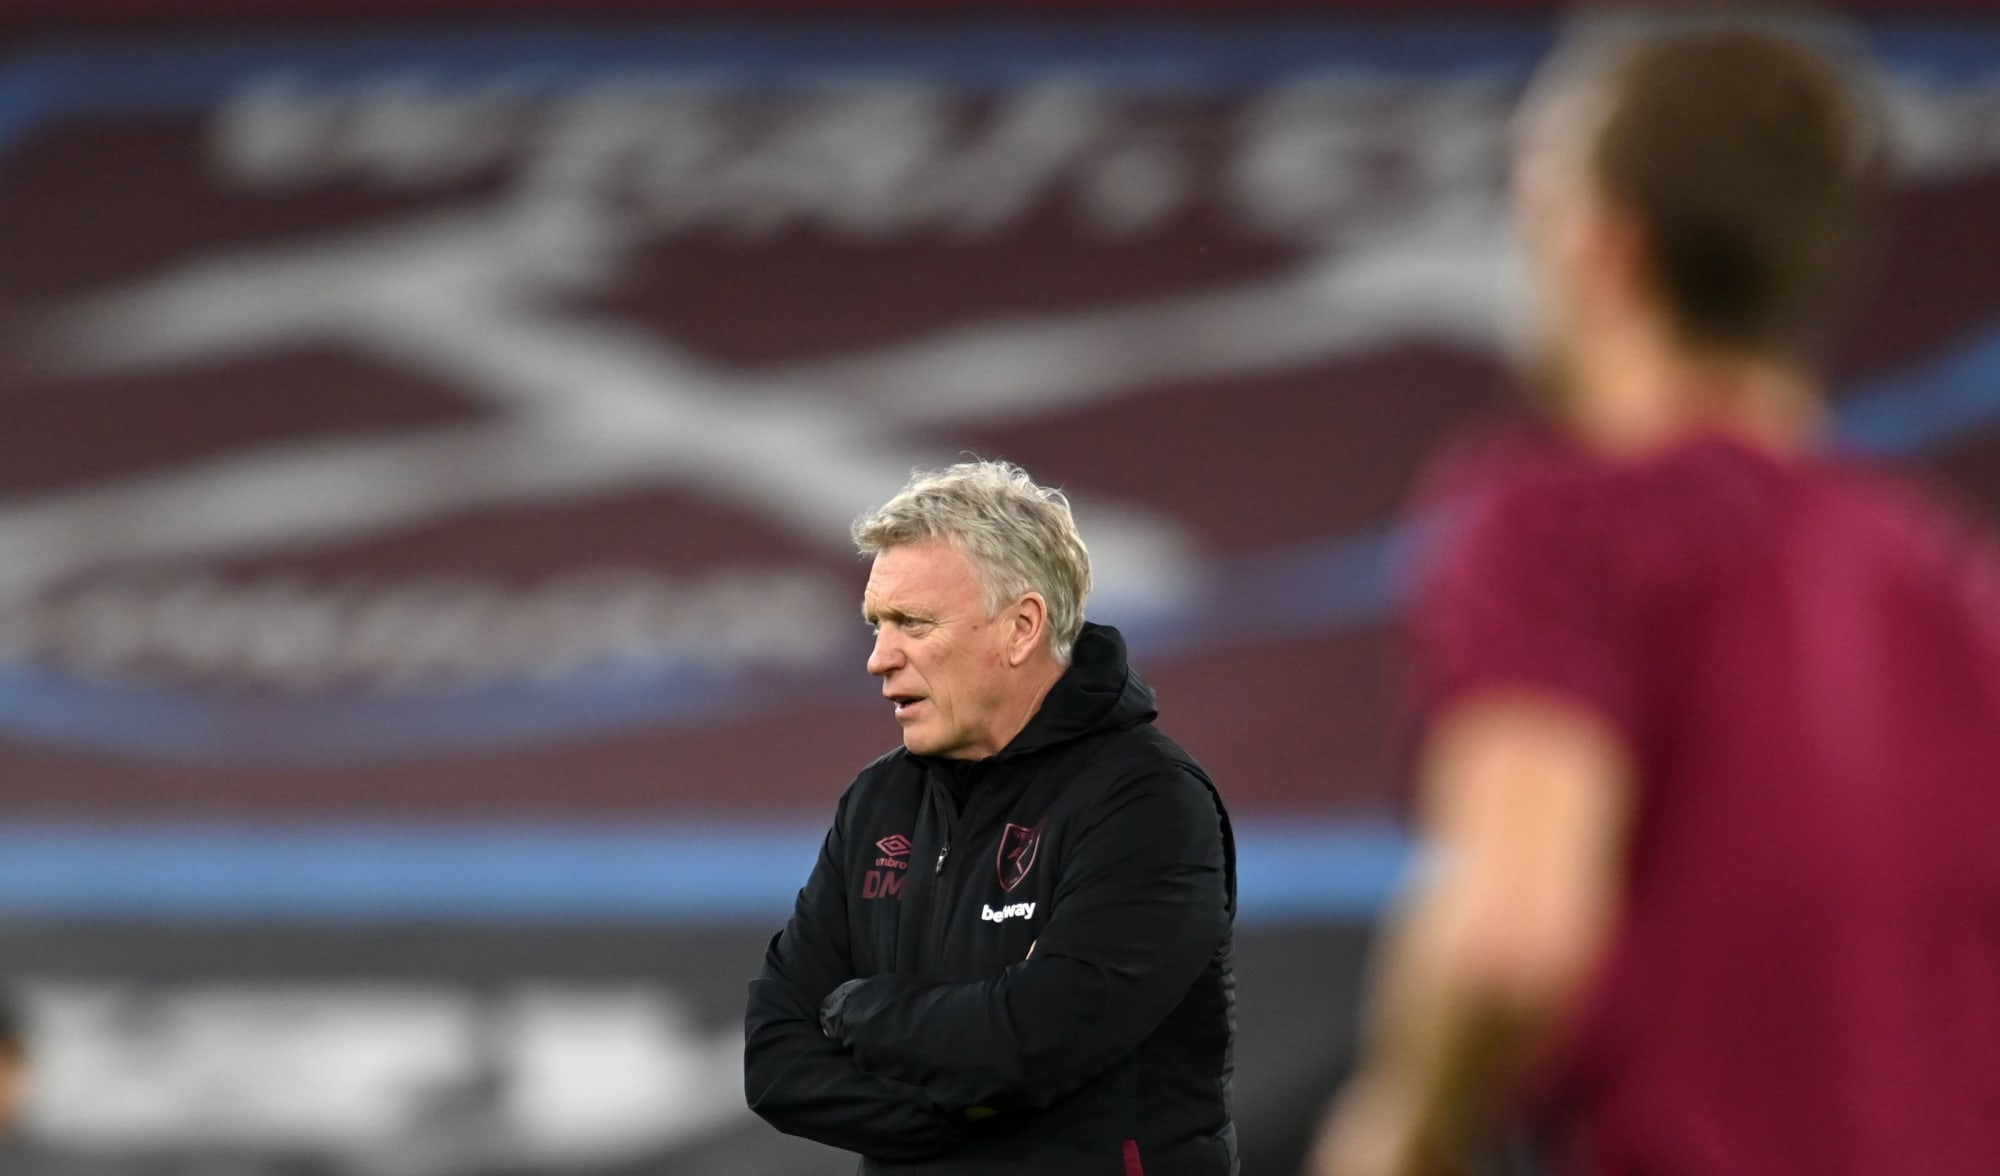 Tinker Time For David Moyes As West Ham Chase Three Points: Predicted XI